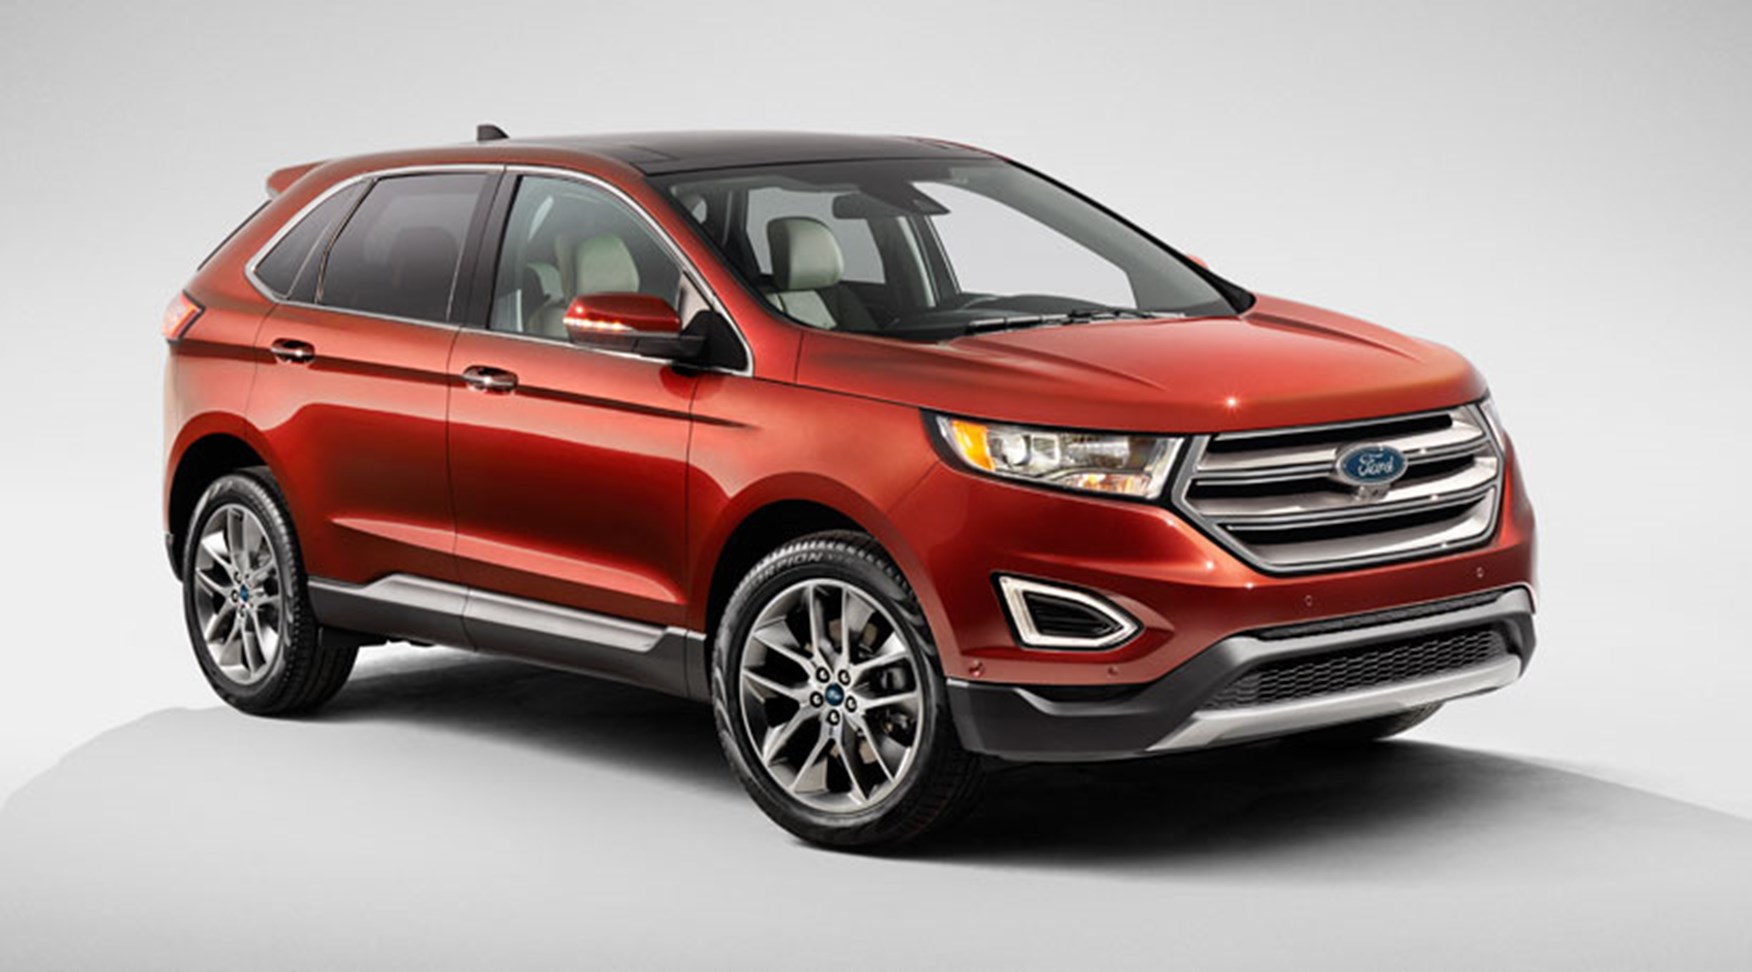 Inside The Cabin Of The Ford Edge